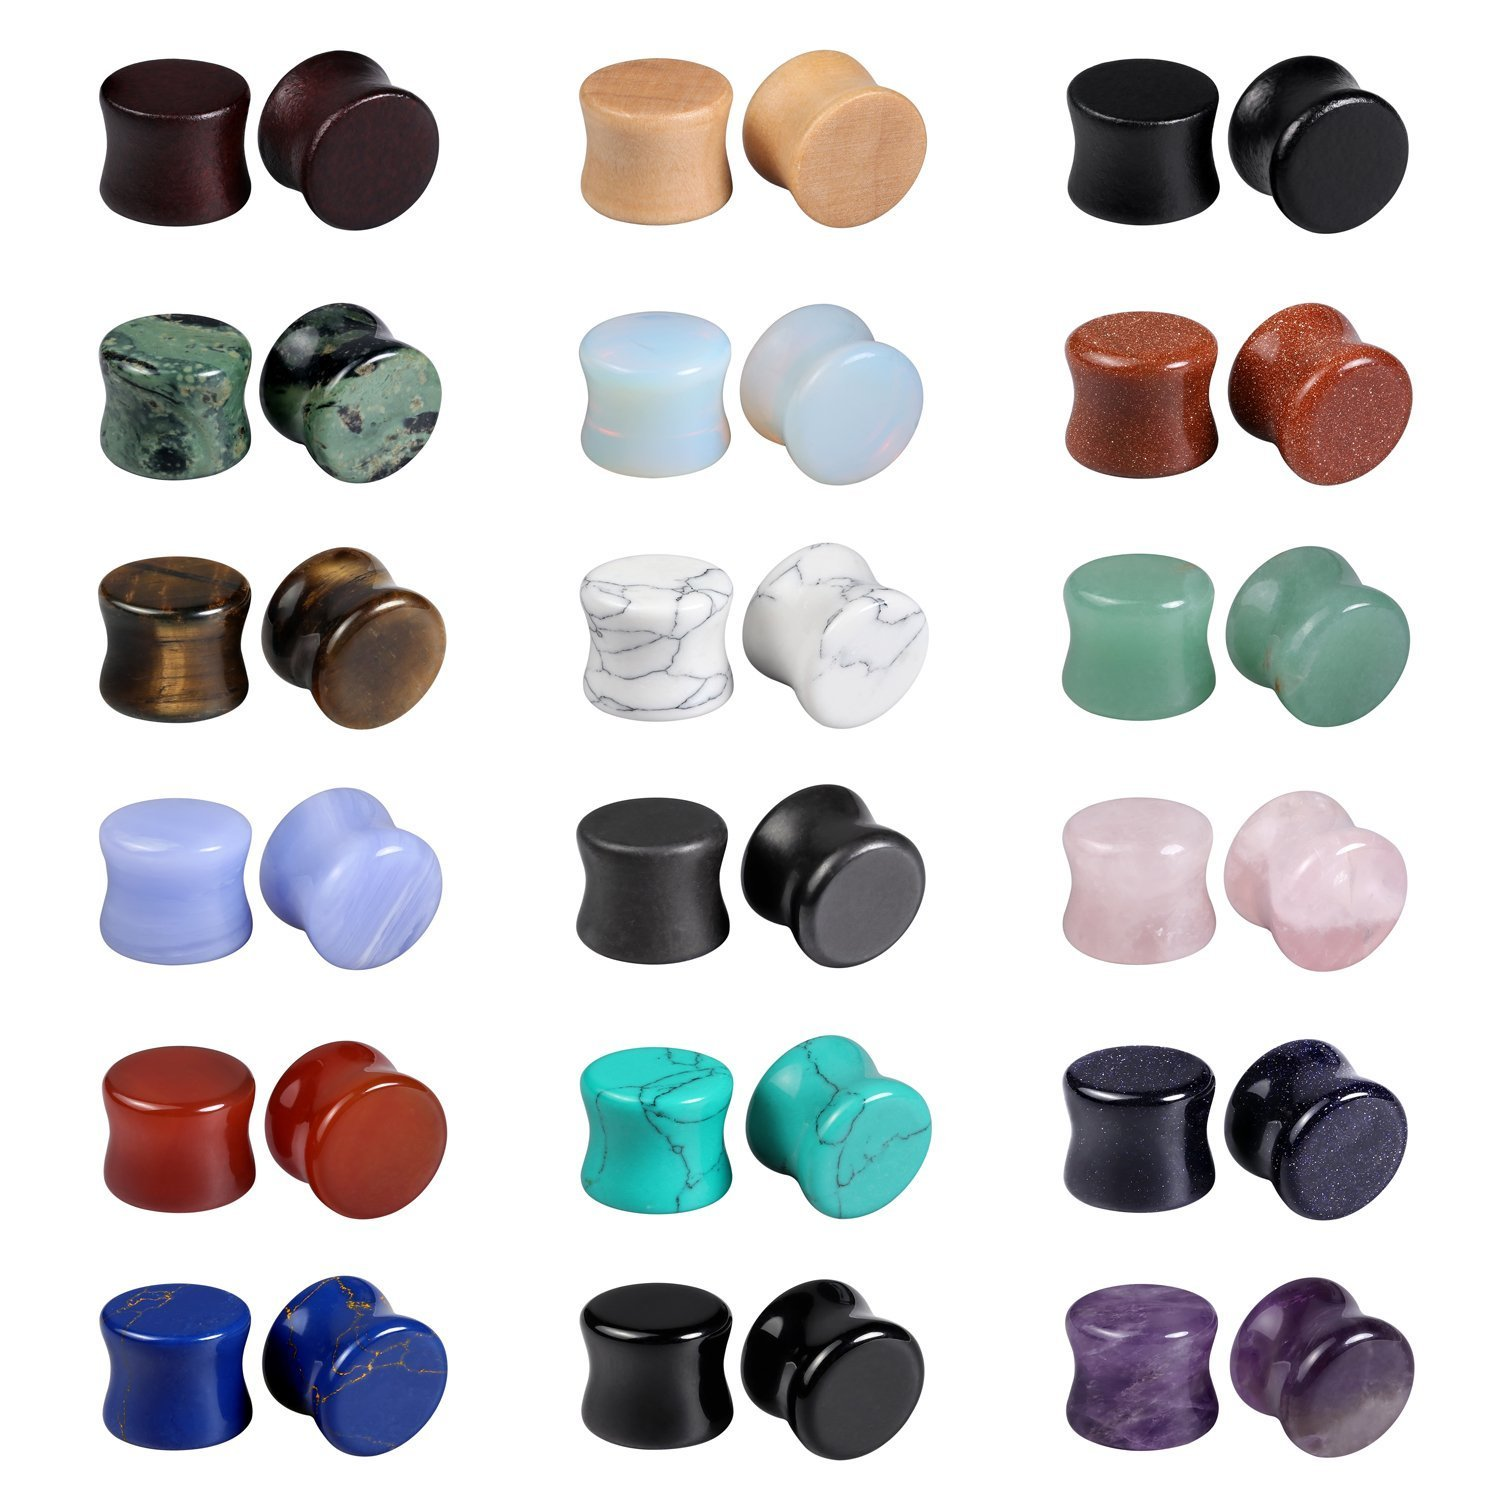 Evevil Wood Mixed Stone Plugs 18 Pairs/36 Pieces Set 1/2'' Ear Plugs Ear Tunnels Ear Gauges Double Flared Ear Expander Stretcher Set (12MM)